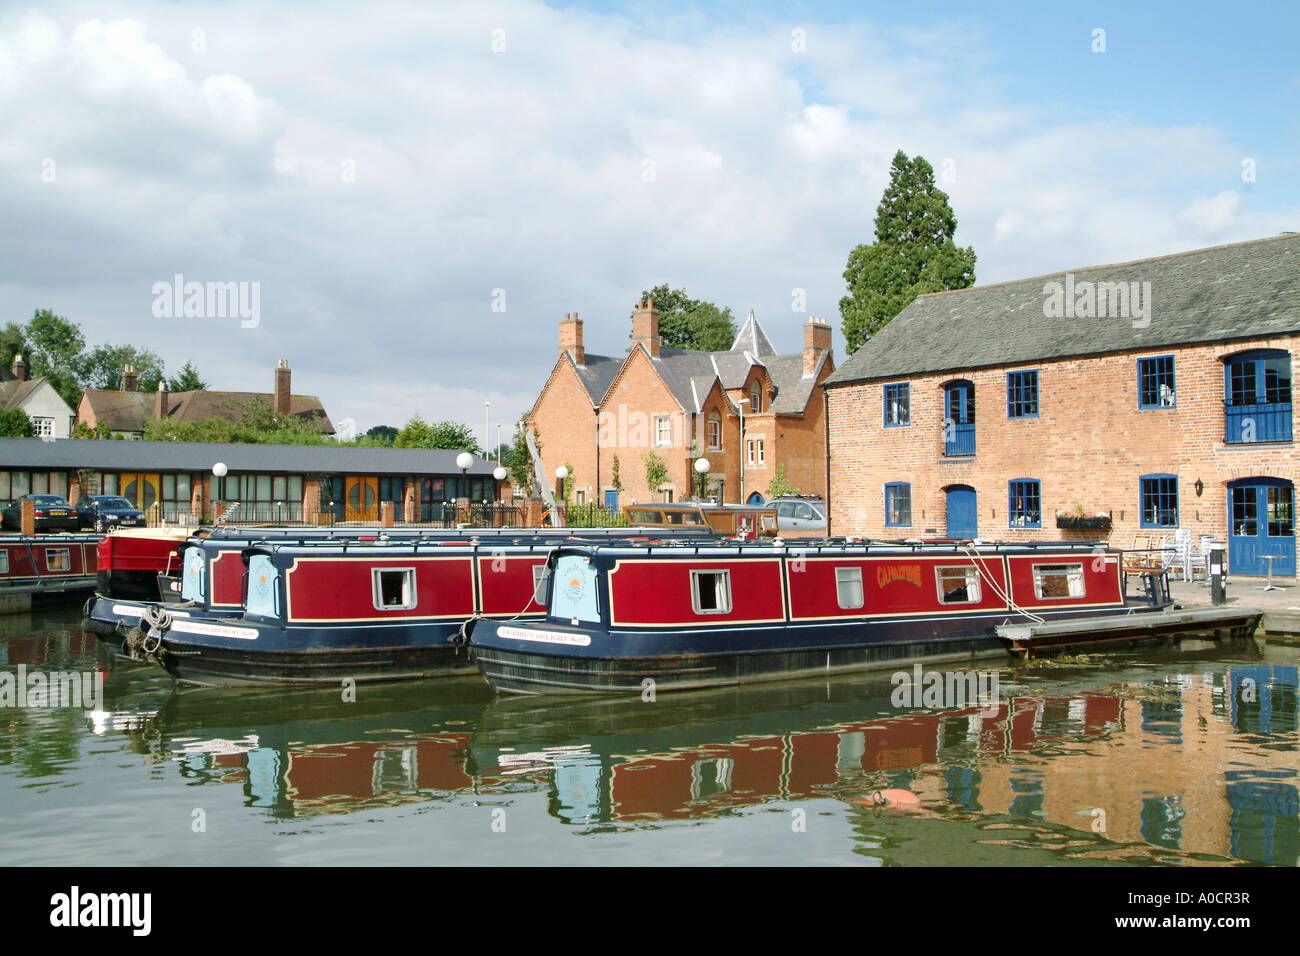 Boats moored in the canal basin at Market Harborough Leicestershire England - Stock Image